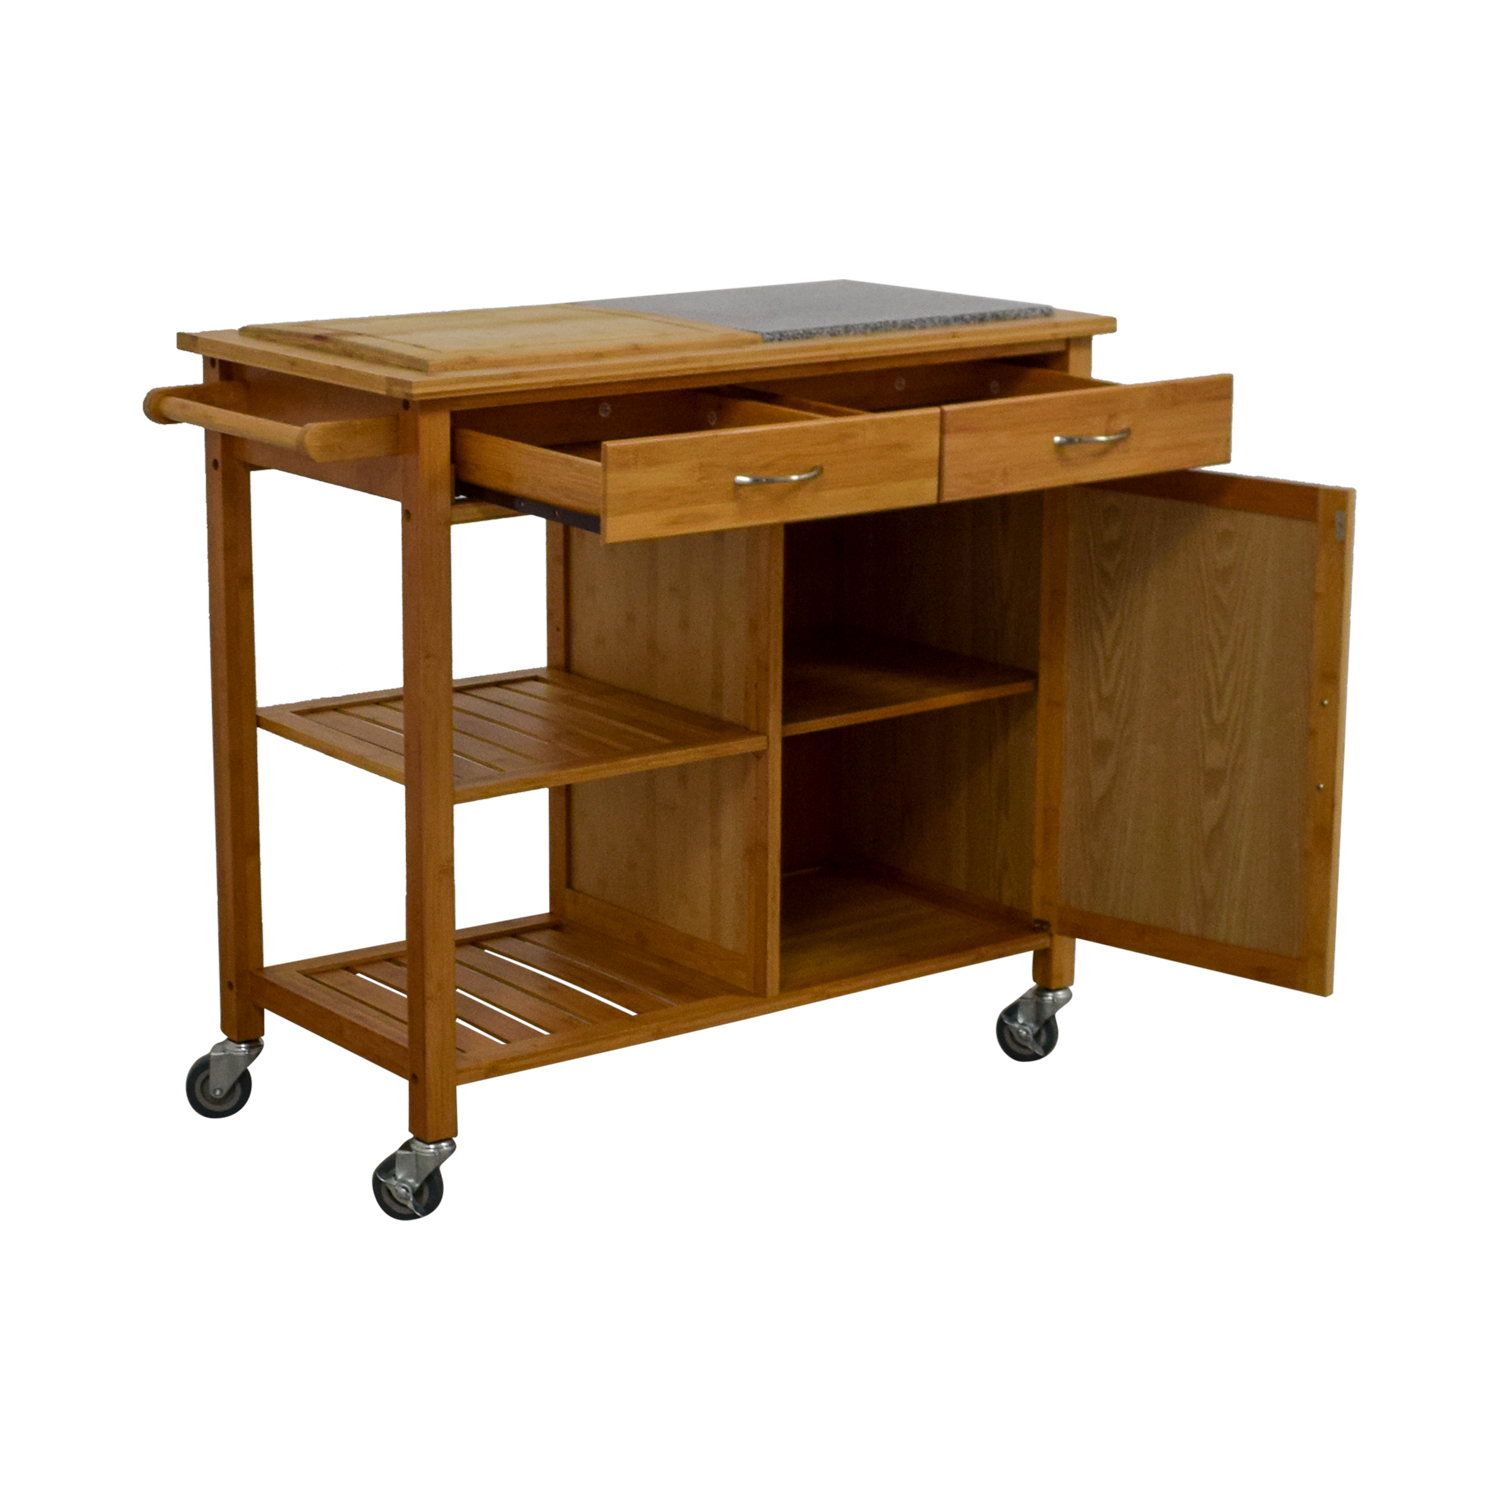 Snazzy Shop Linon Home Bamboo Rolling Kitchen Island Linon Home Utility Off Linon Home Linon Home Bamboo Rolling Kitchen Island Tables Kitchen Island Desk Combo Kitchen Island Design Software kitchen Kitchen Island Desk